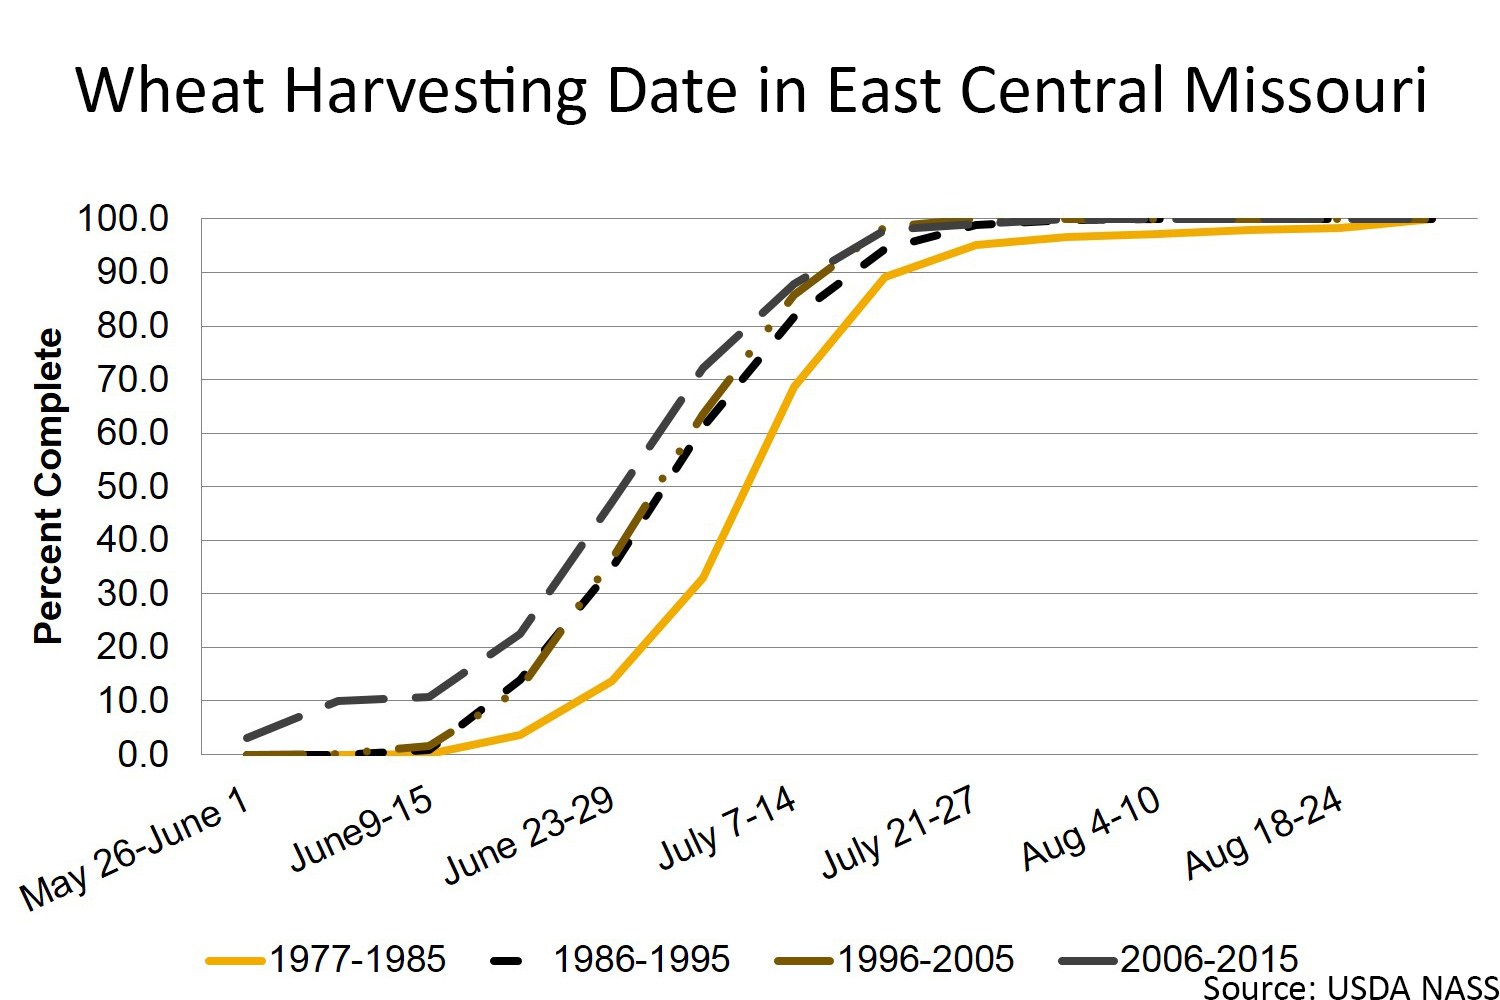 Wheat harvesting date in east central Missouri chart